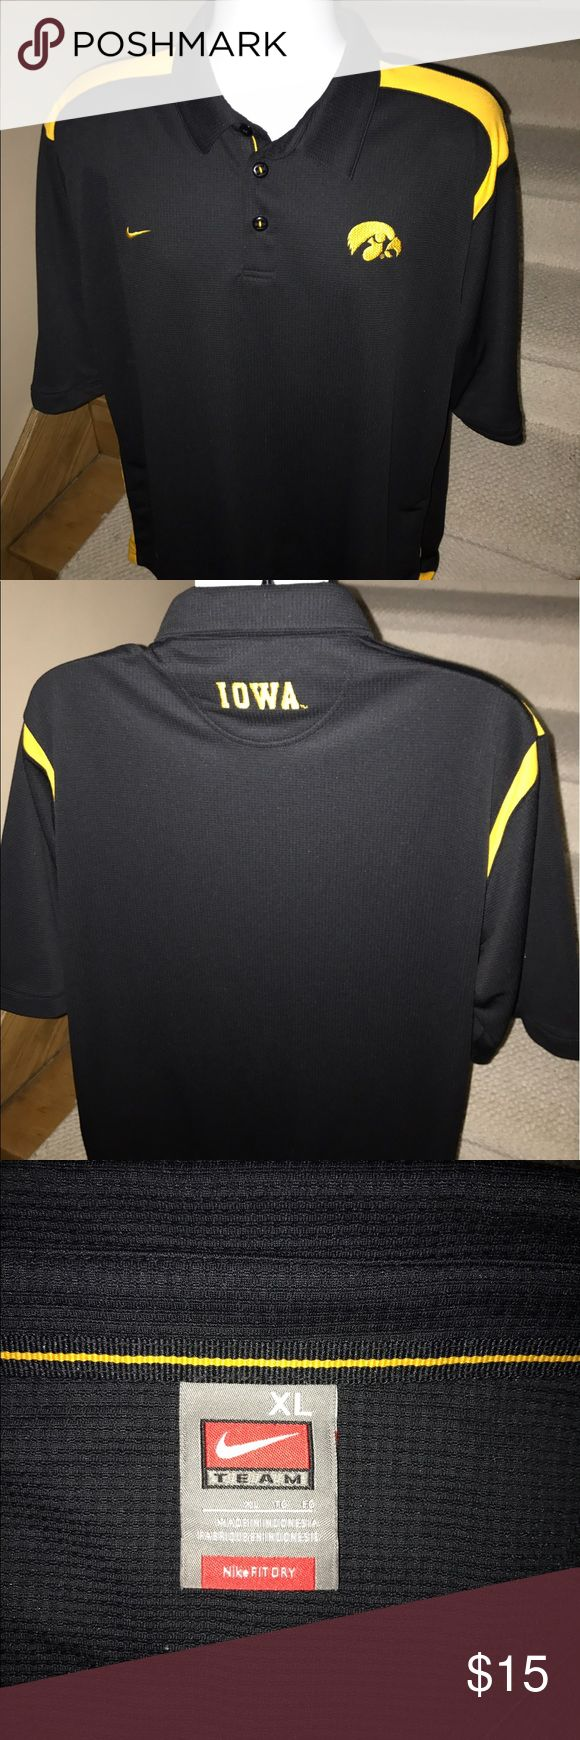 Nike fit dri Iowa Hawkeyes casual golf polo shirt Exclusive men's Nike moisture wicking Iowa Hawkeyes golf polo shirt that is sized XL.  Perfect mint condition.  Made out of Fit Dry wicking polyester.  You won't be disappointed. Nike Shirts Polos